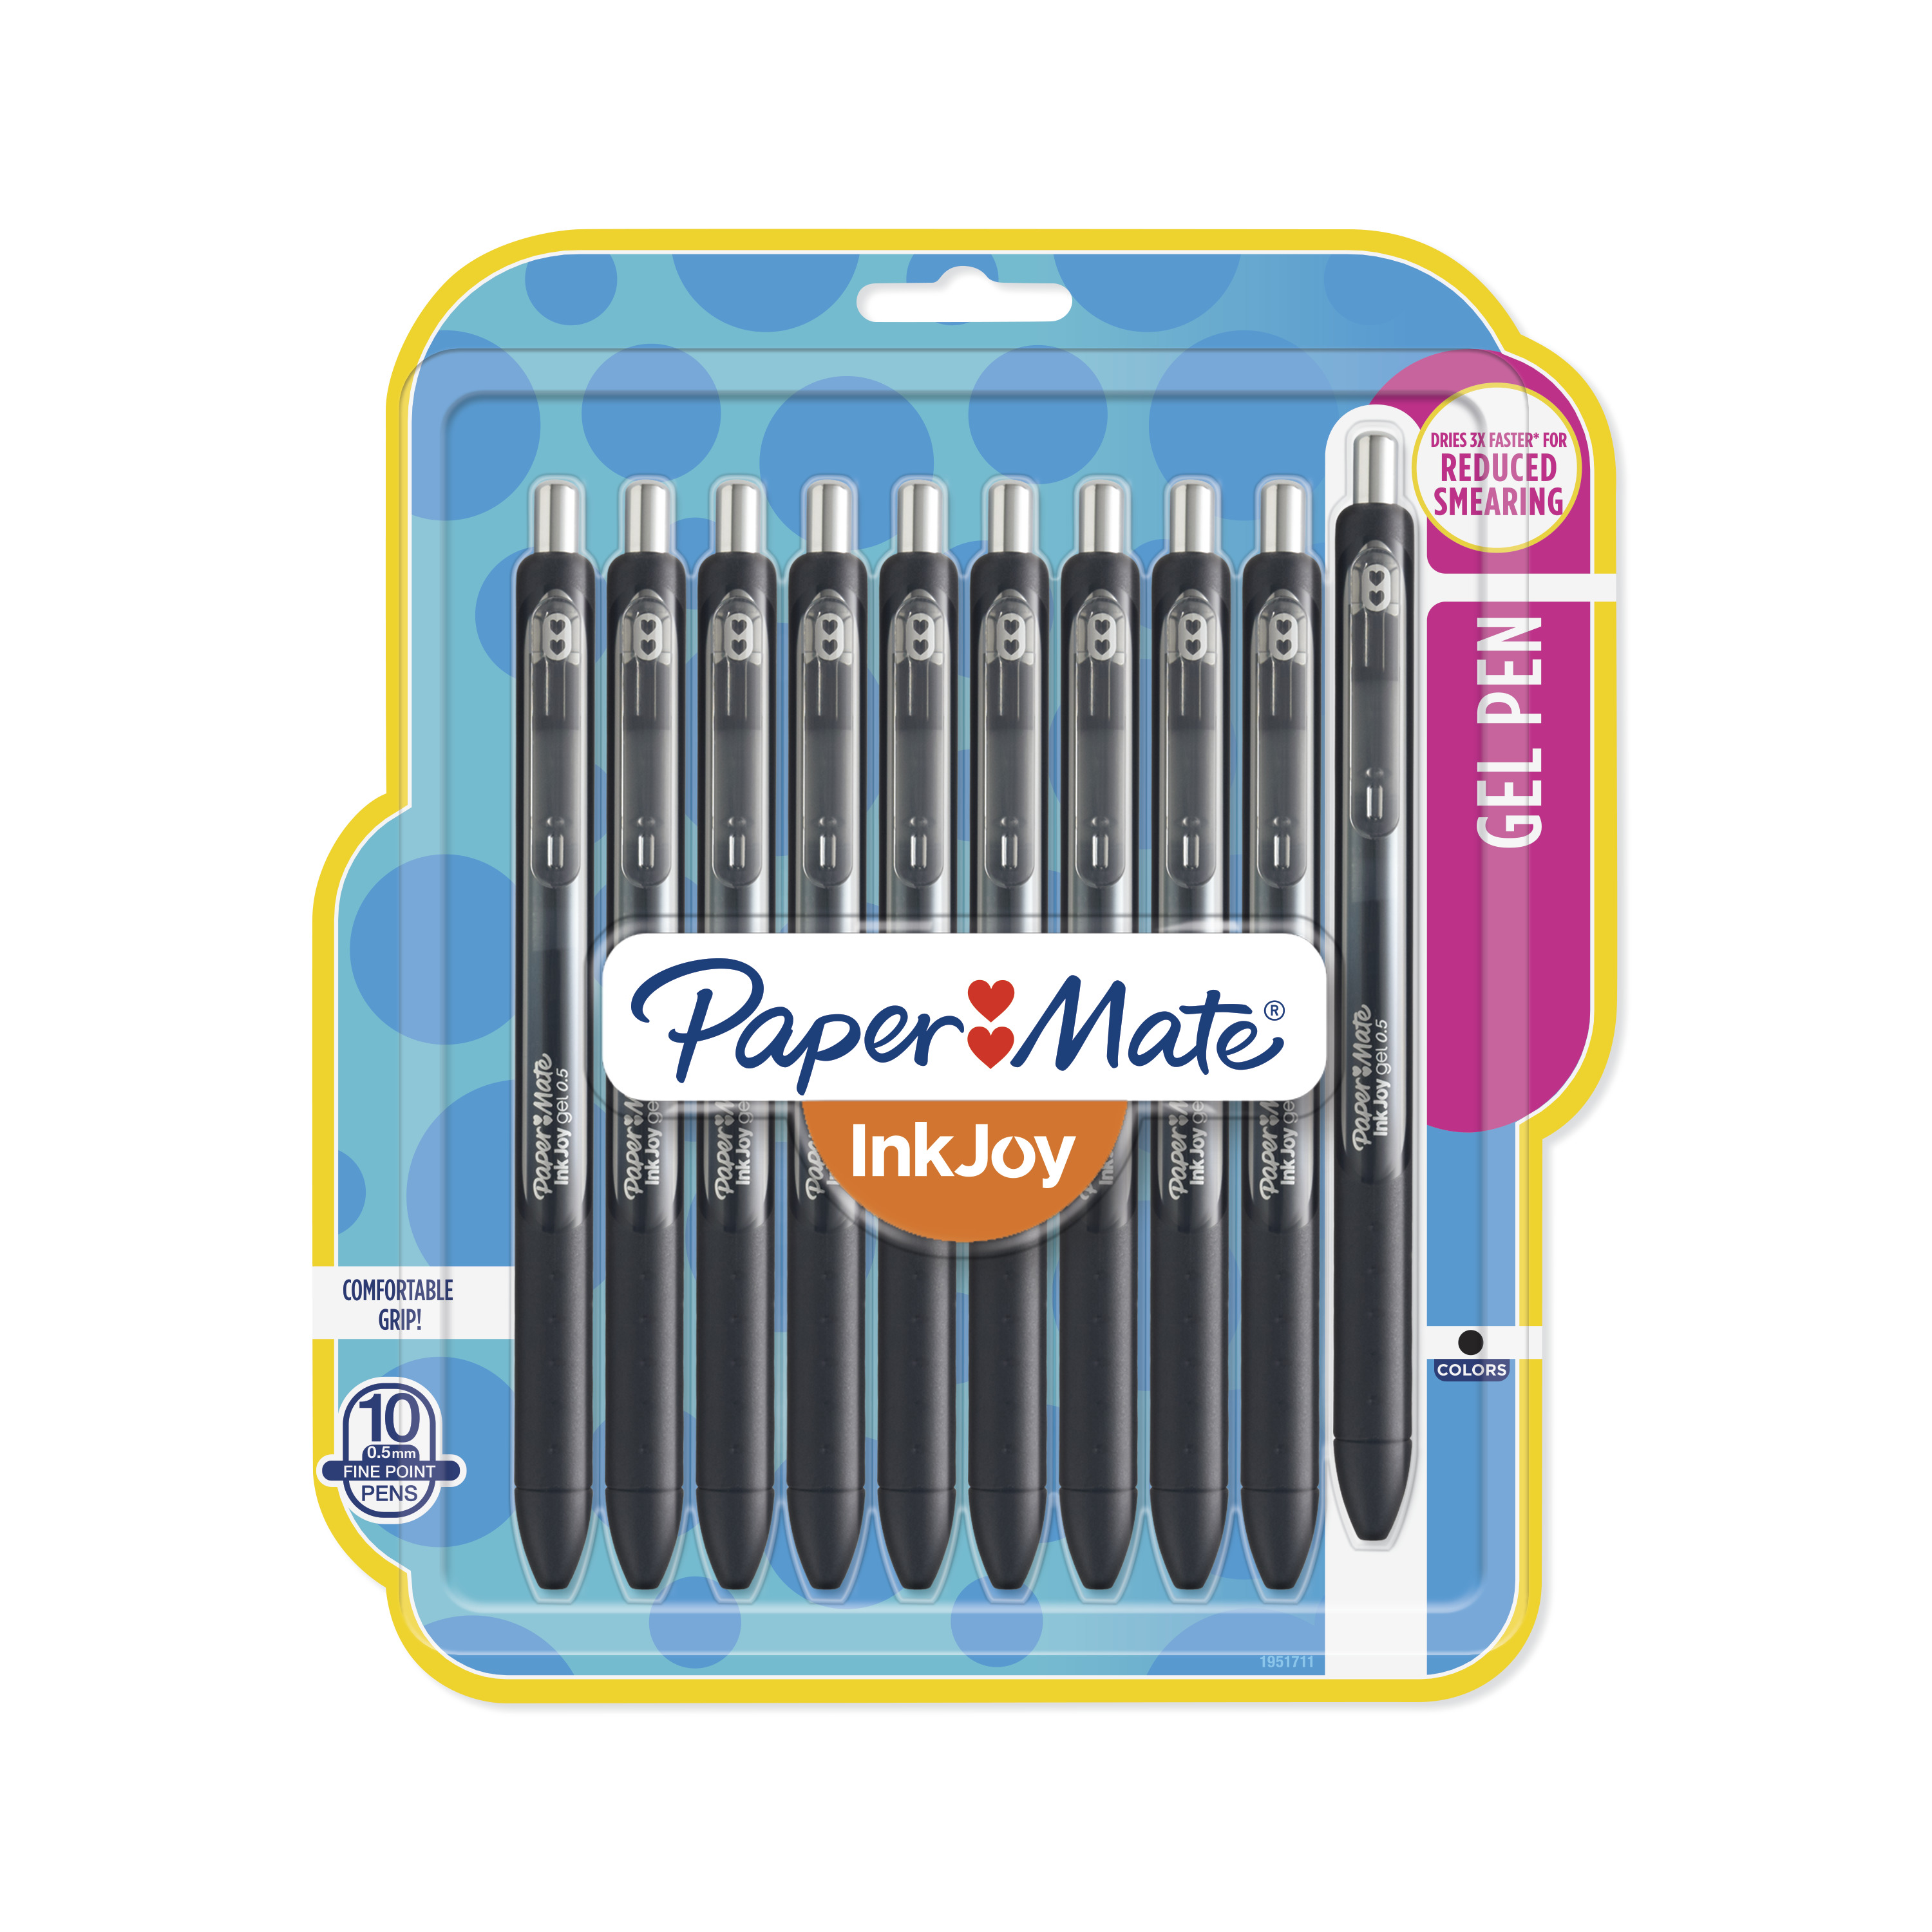 Paper Mate InkJoy Fine Point 0.5mm Gel Pens, 10 count